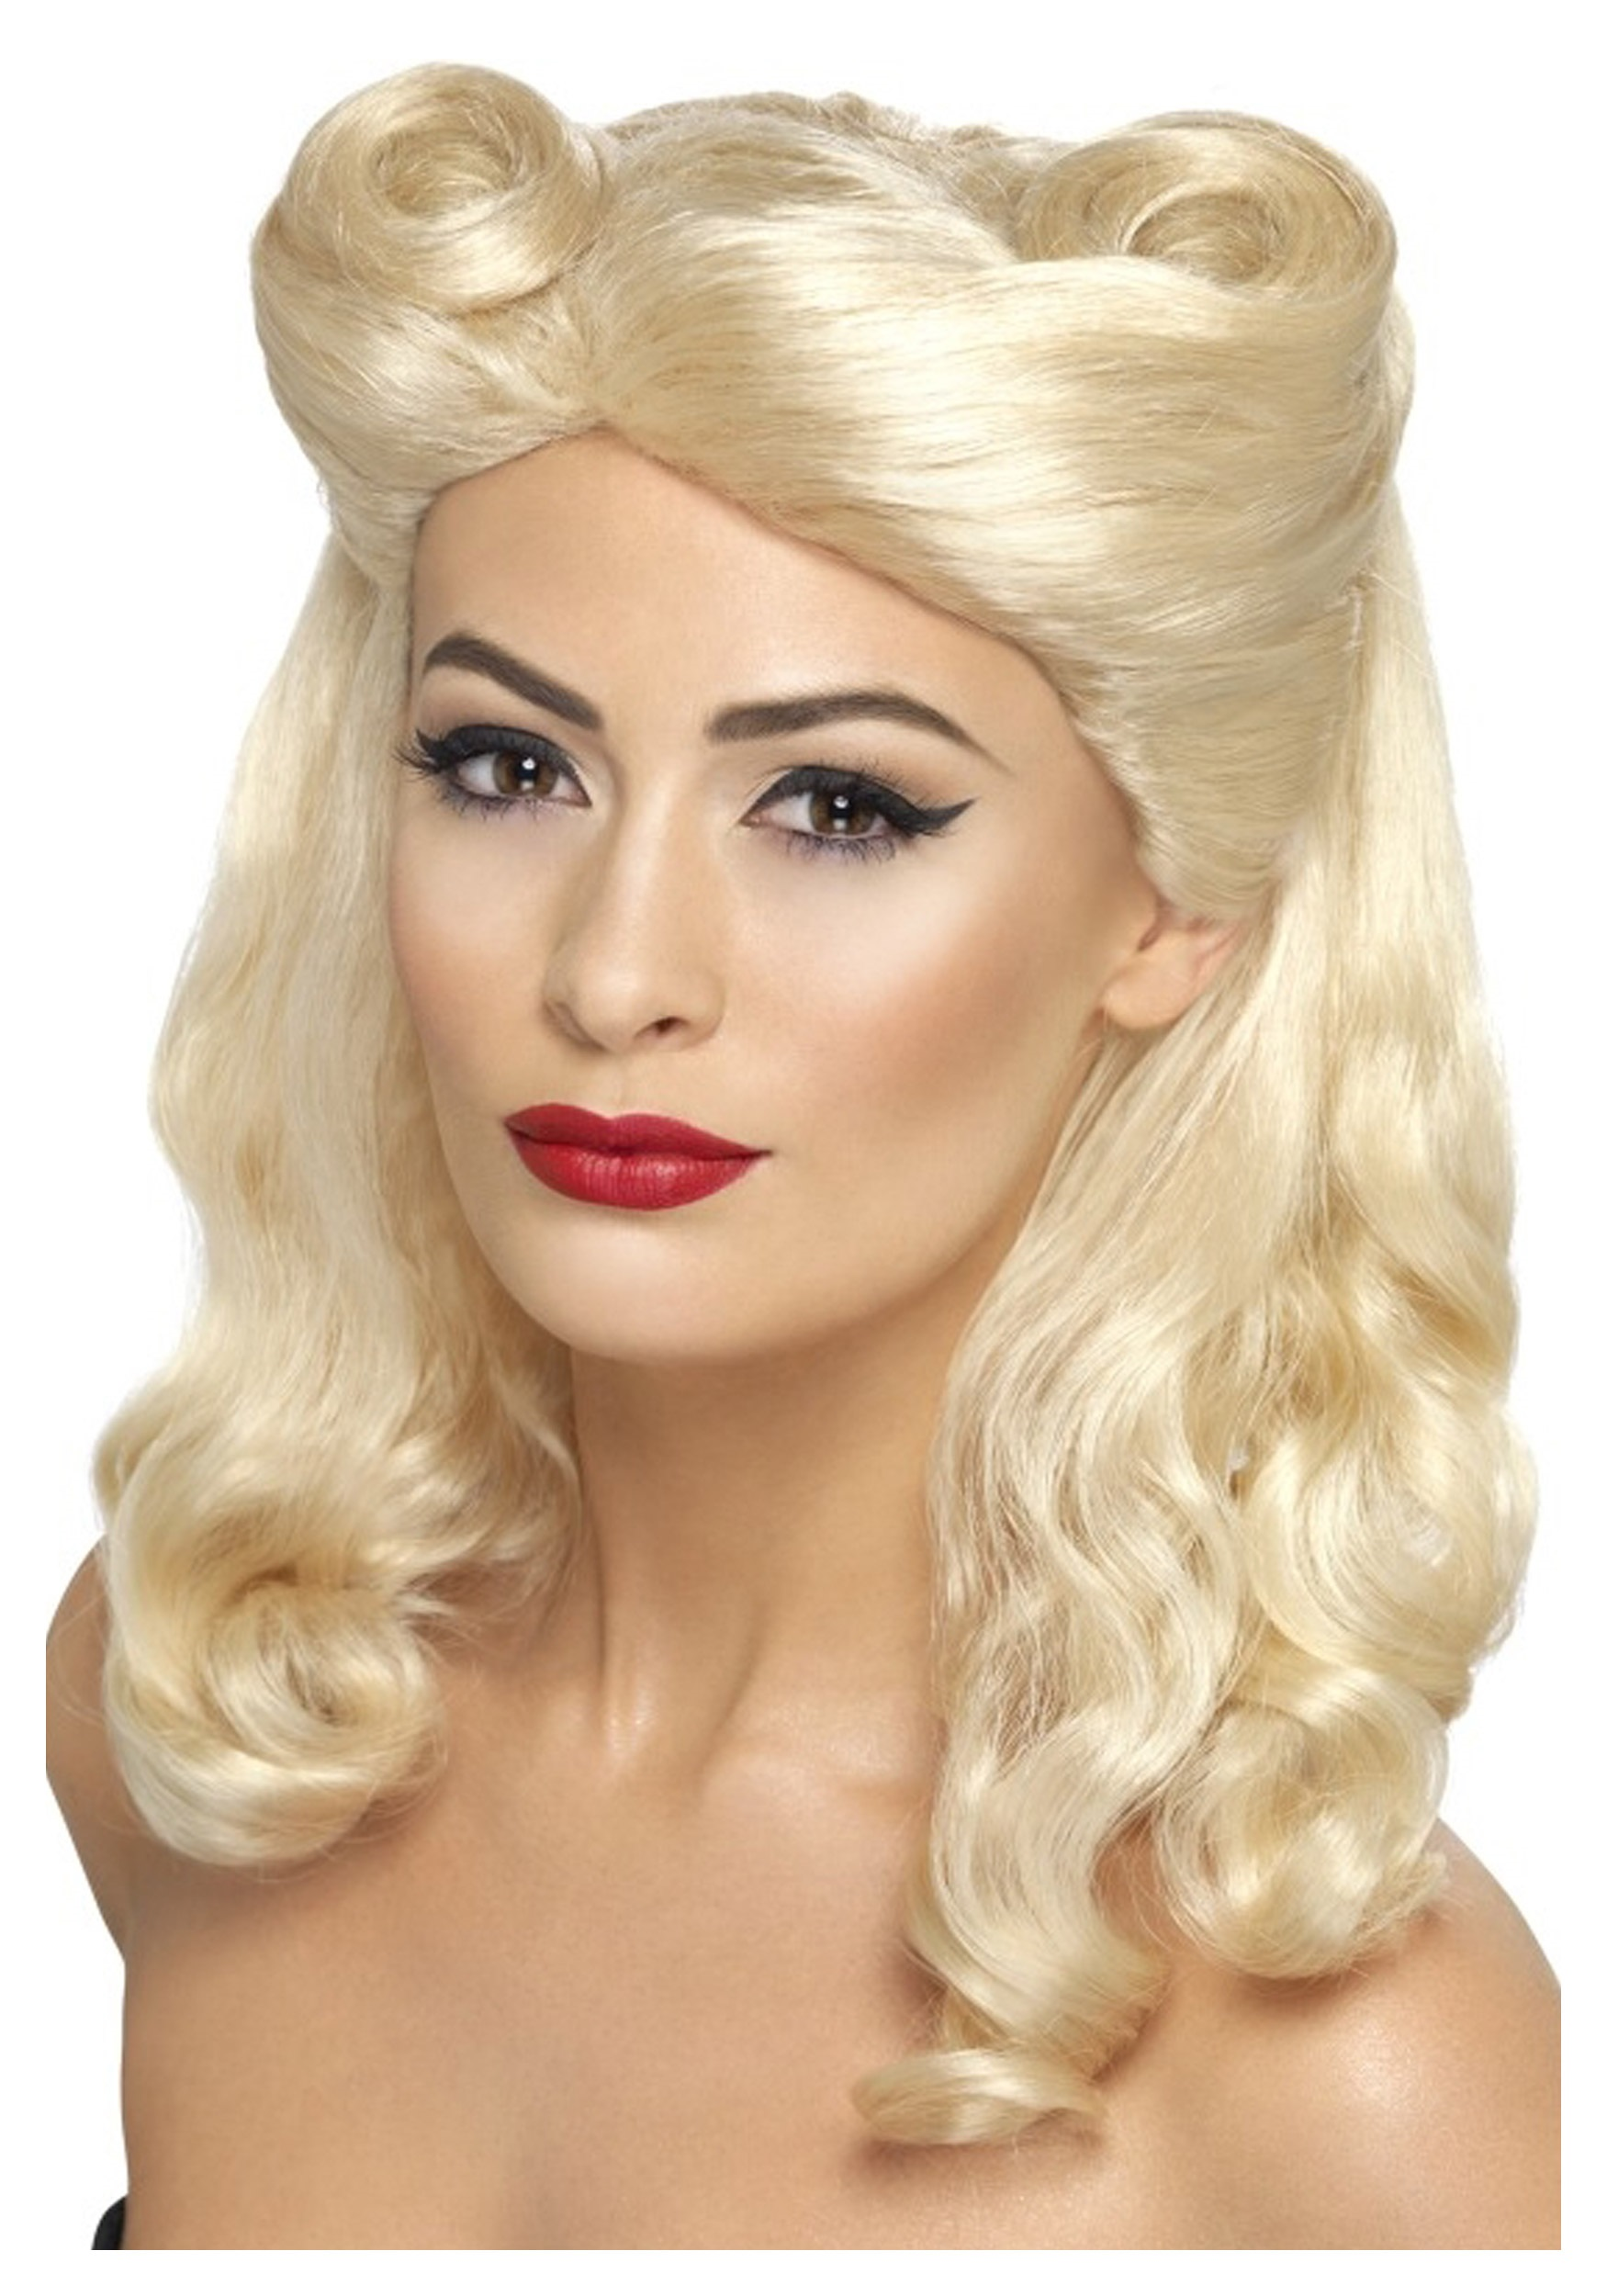 40 S Blonde Pin Up Wig